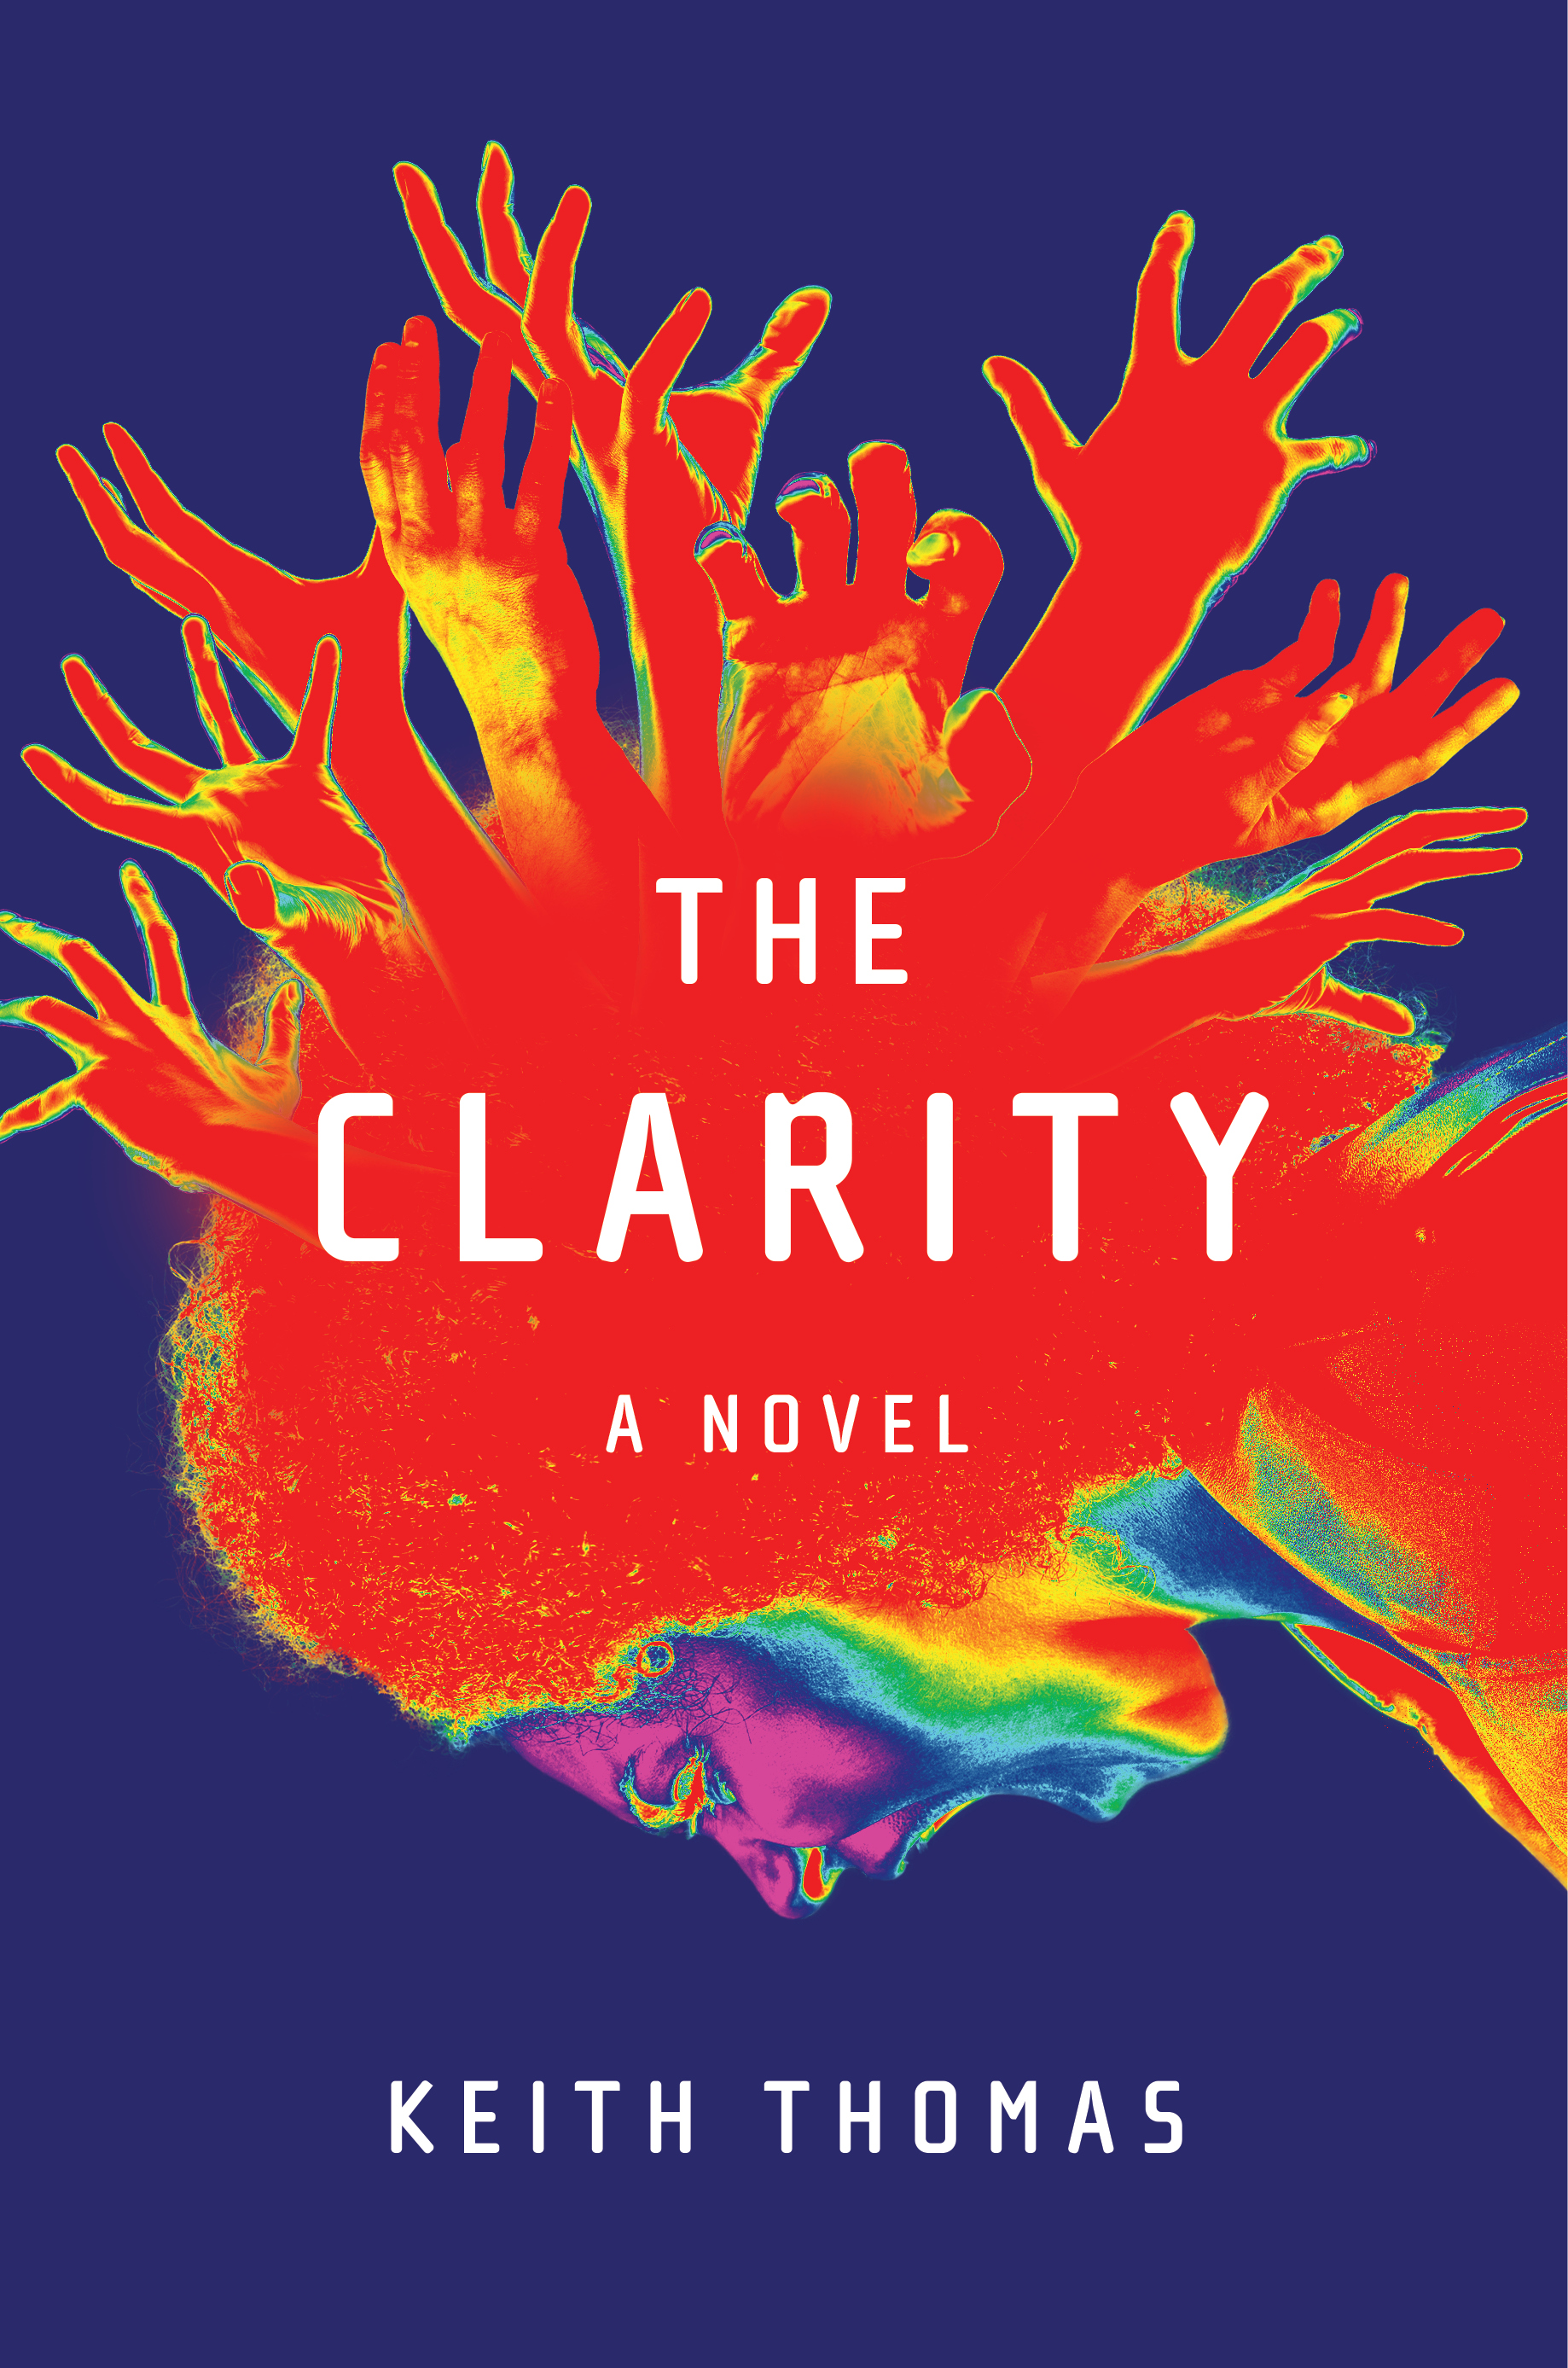 The Clarity by Keith Thomas